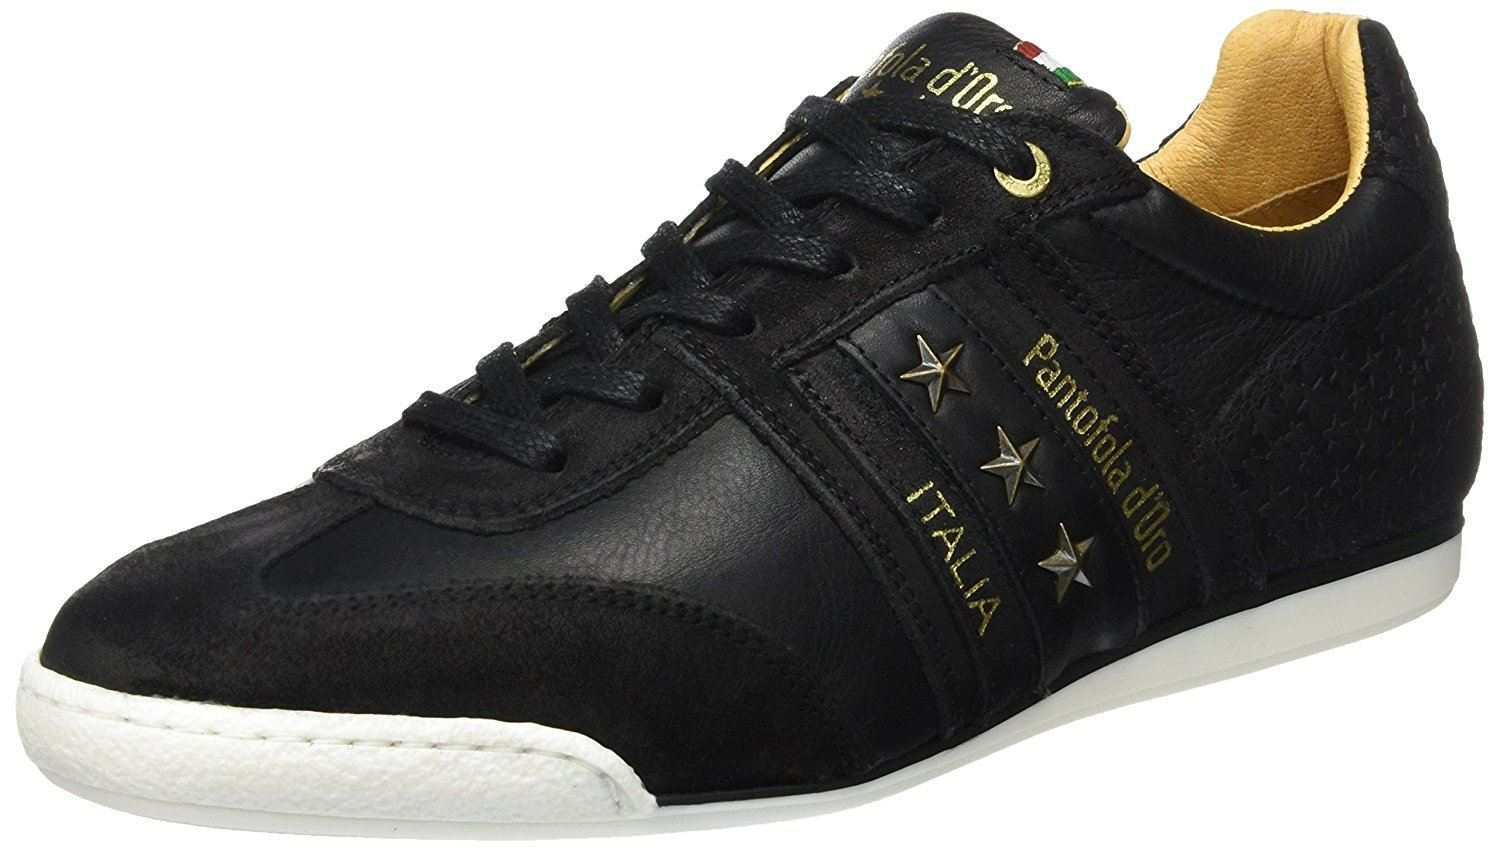 Pantofola d'Ora Imola Star Uomo Low Black Mens Trainers Quick View